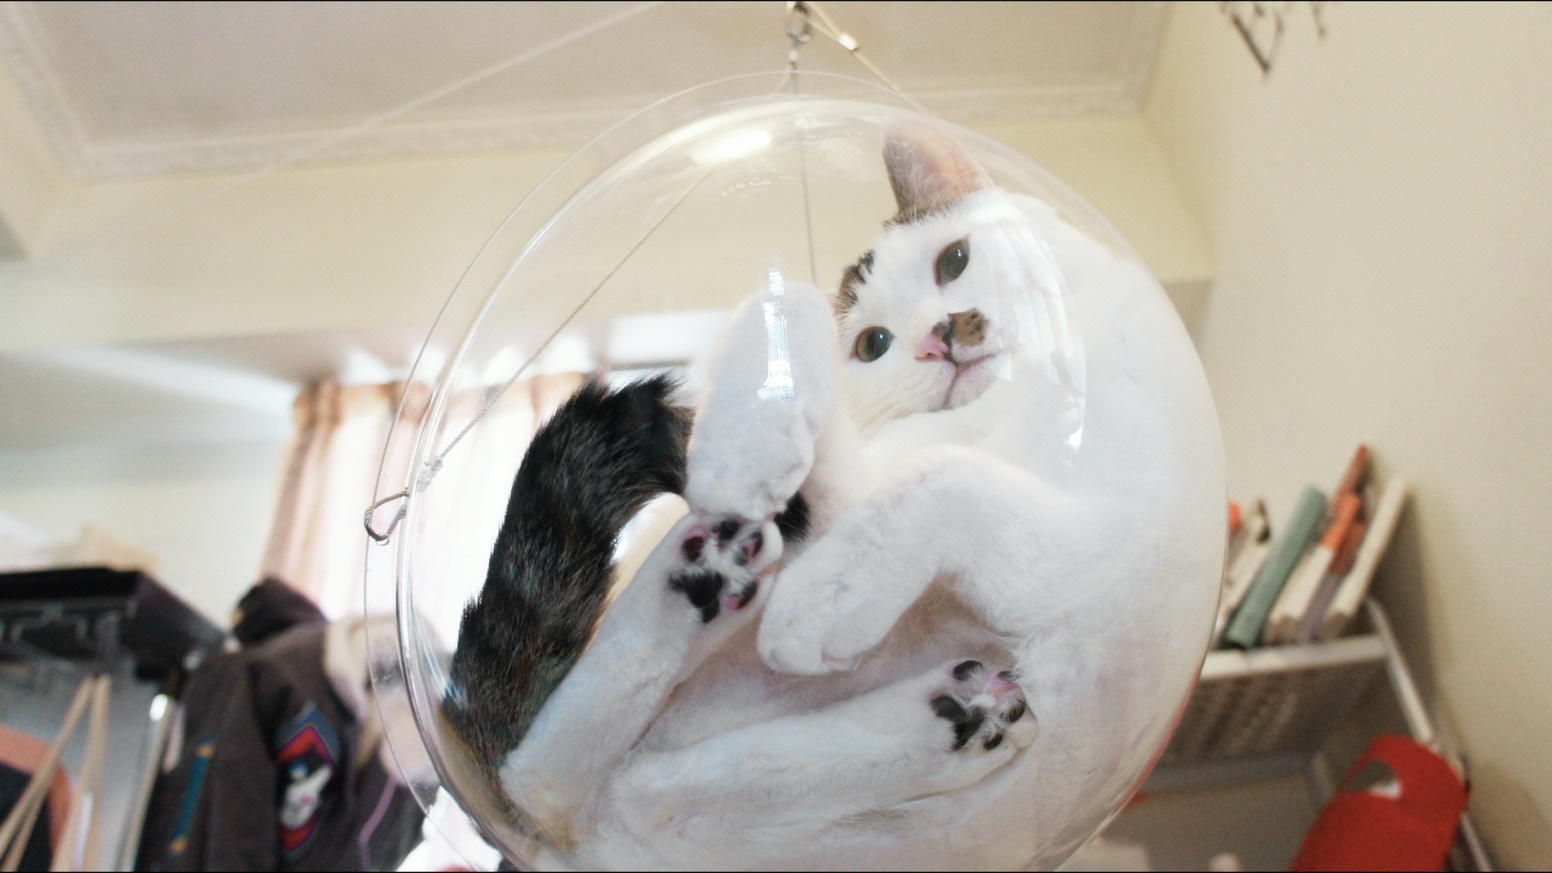 A fully transparent swing where your beloved cat can rest and play in. Look at the cute paws and fat tummy of your cat from all angles.